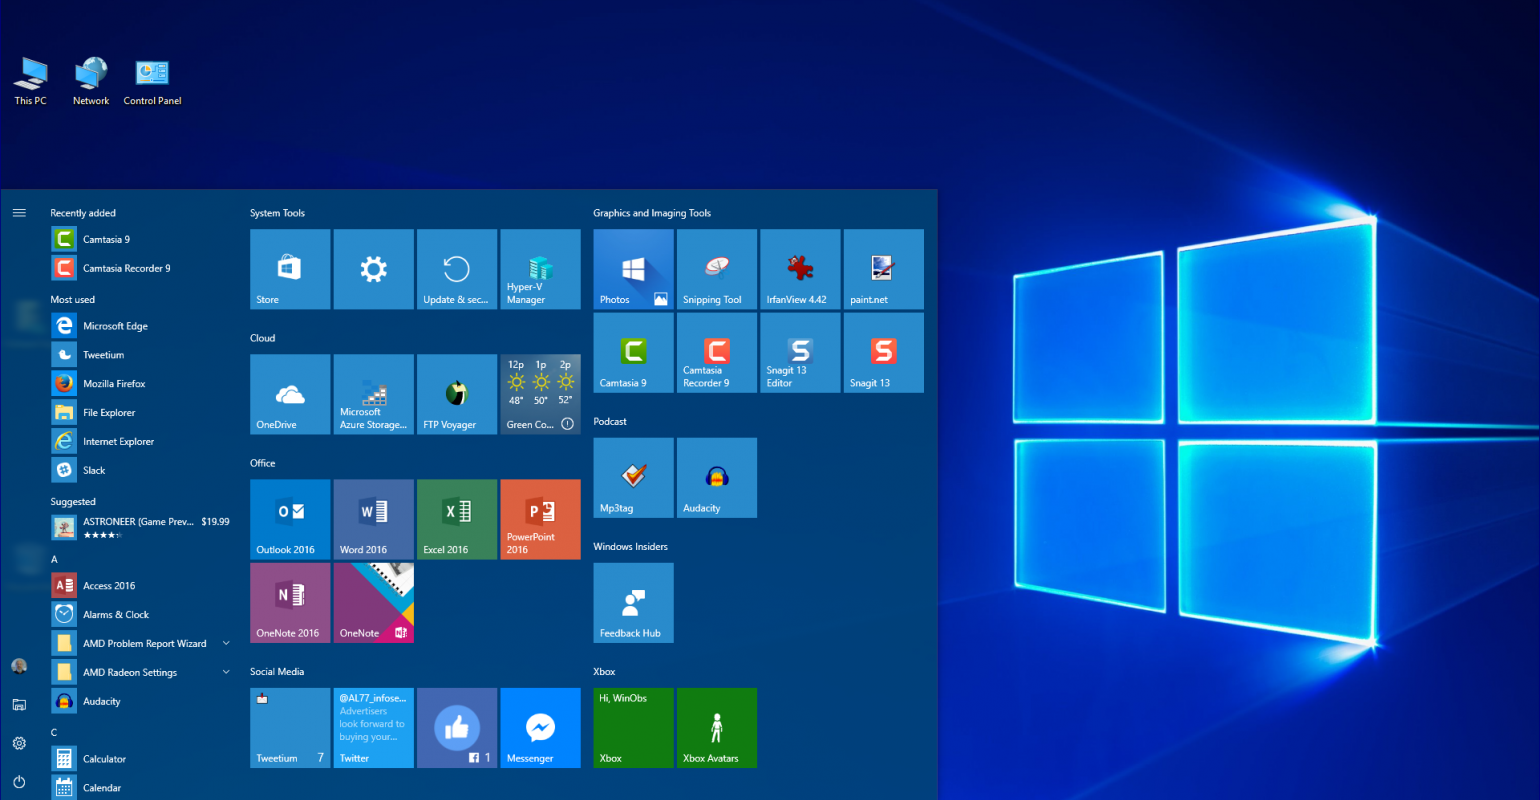 Windows 10 | The final stages of development for this udpate